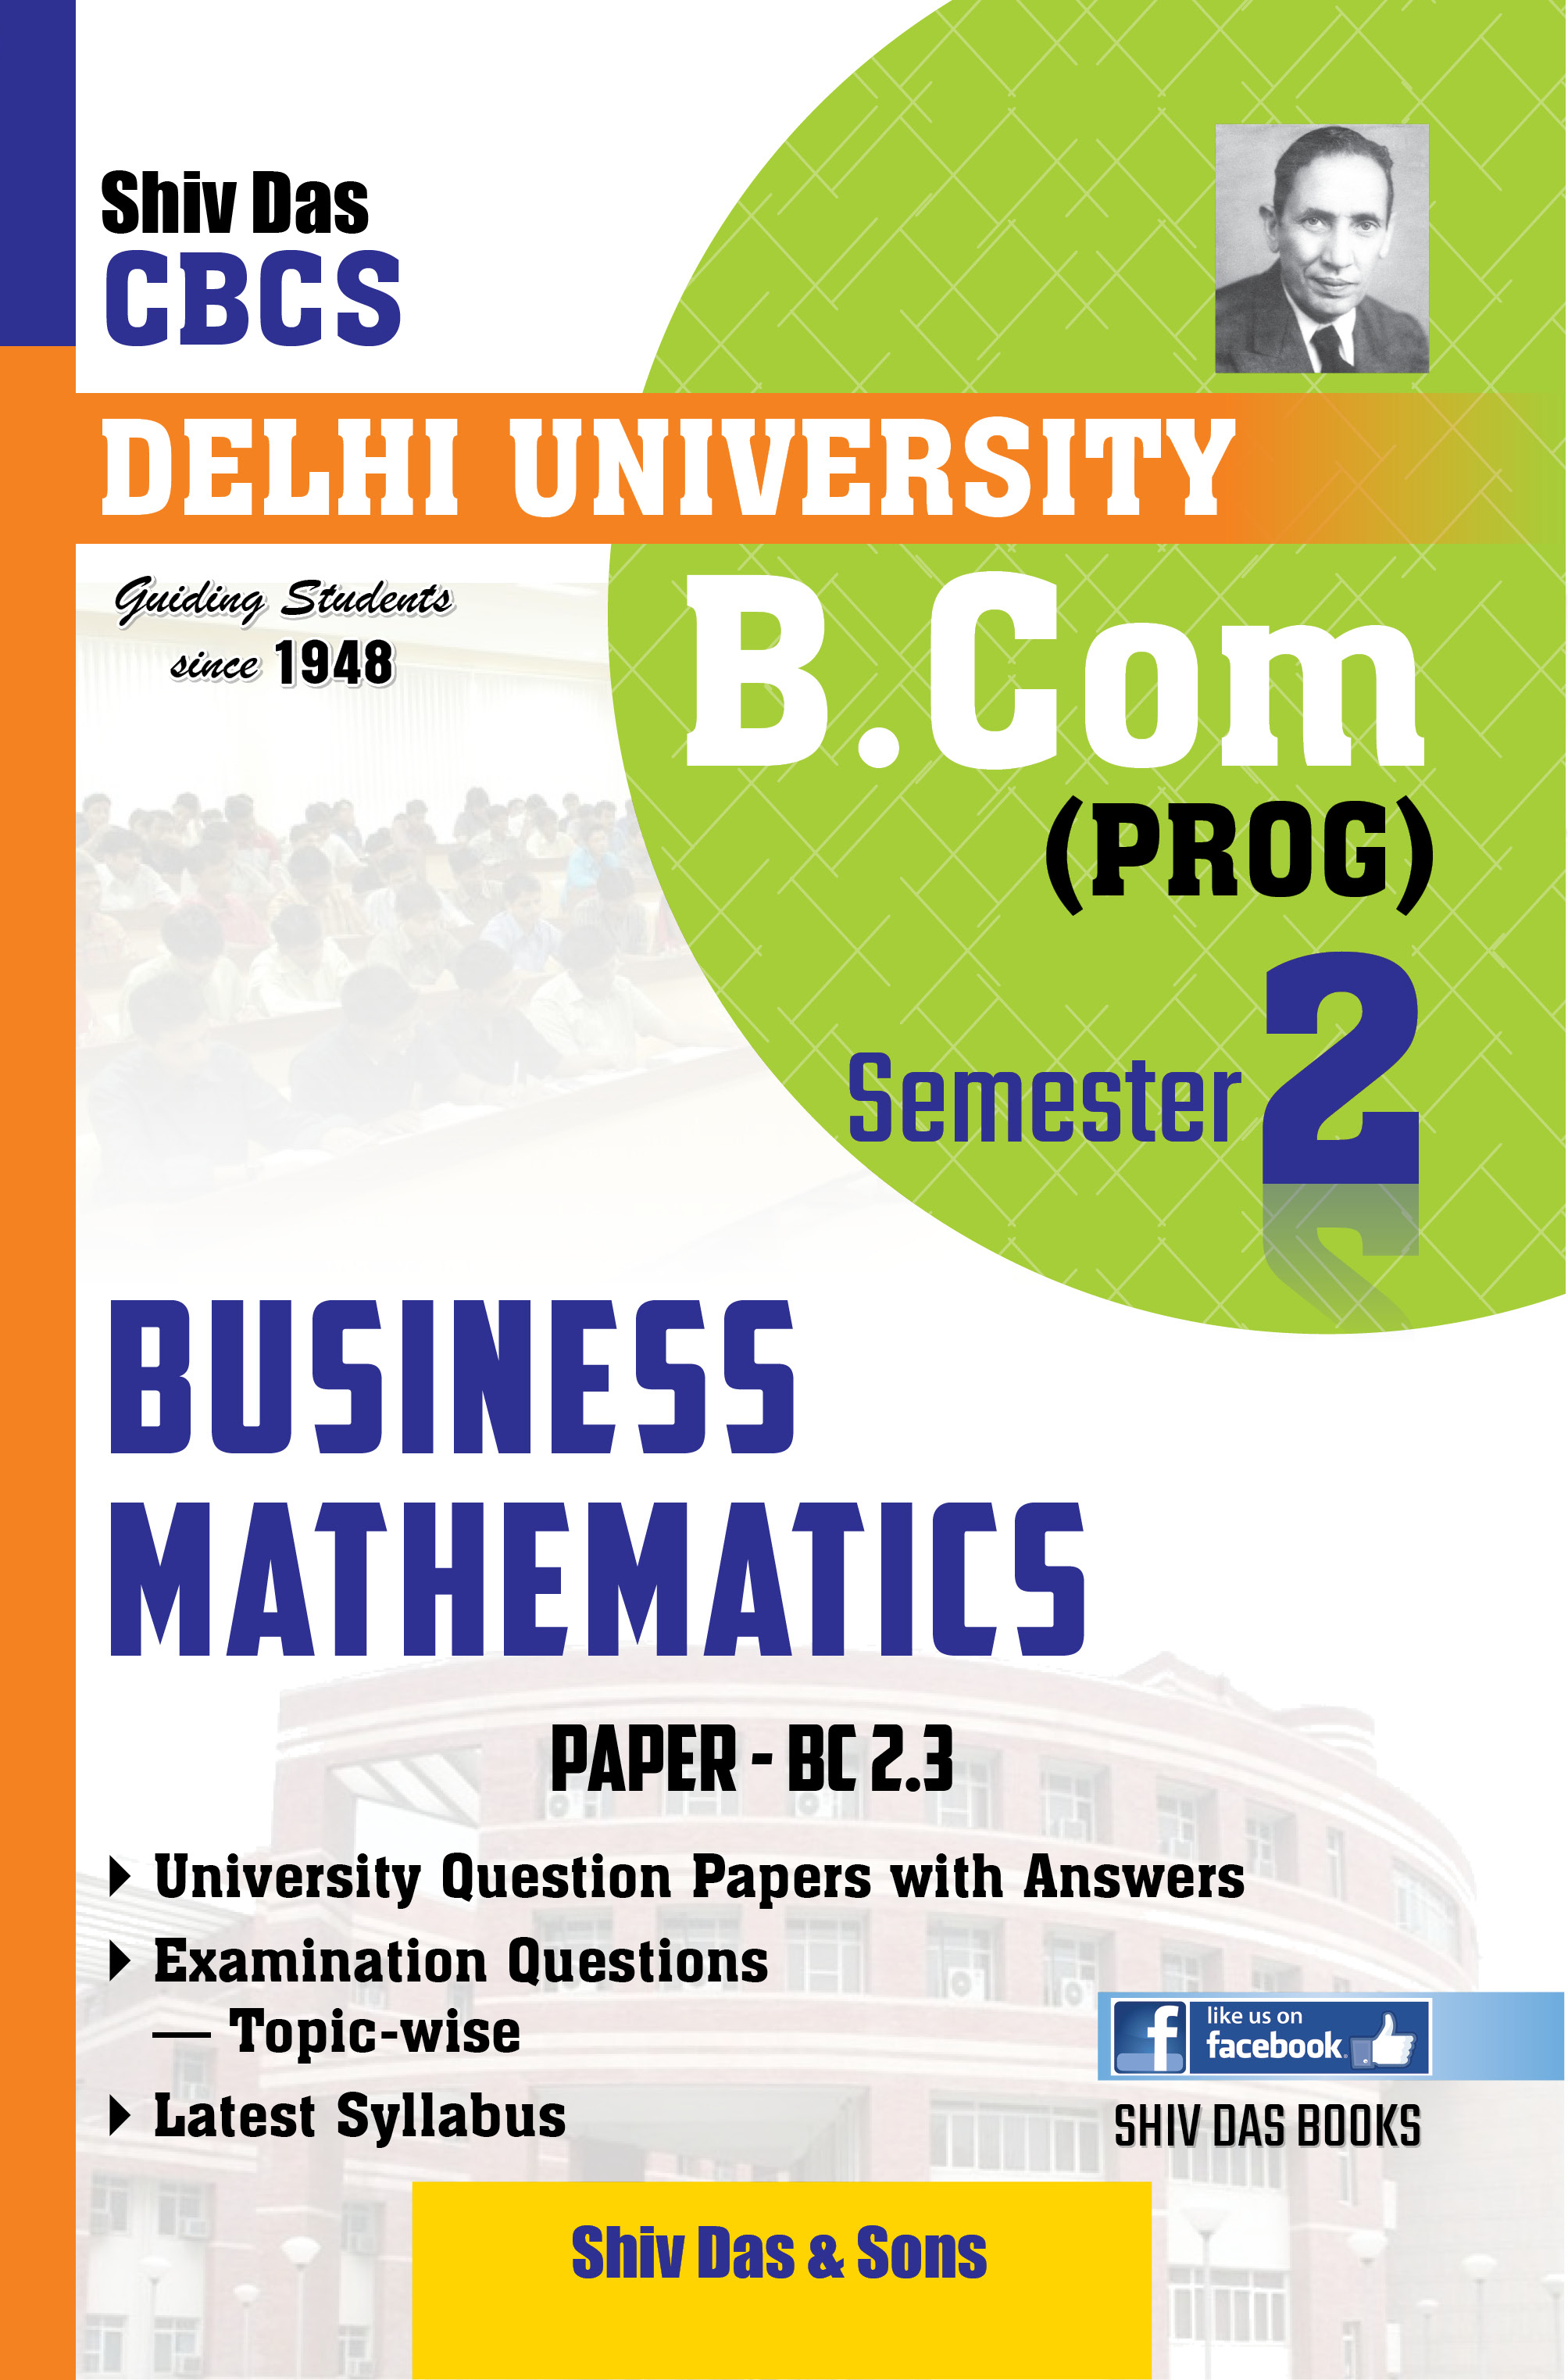 Business Mathematics for B.Com Prog Semester-2